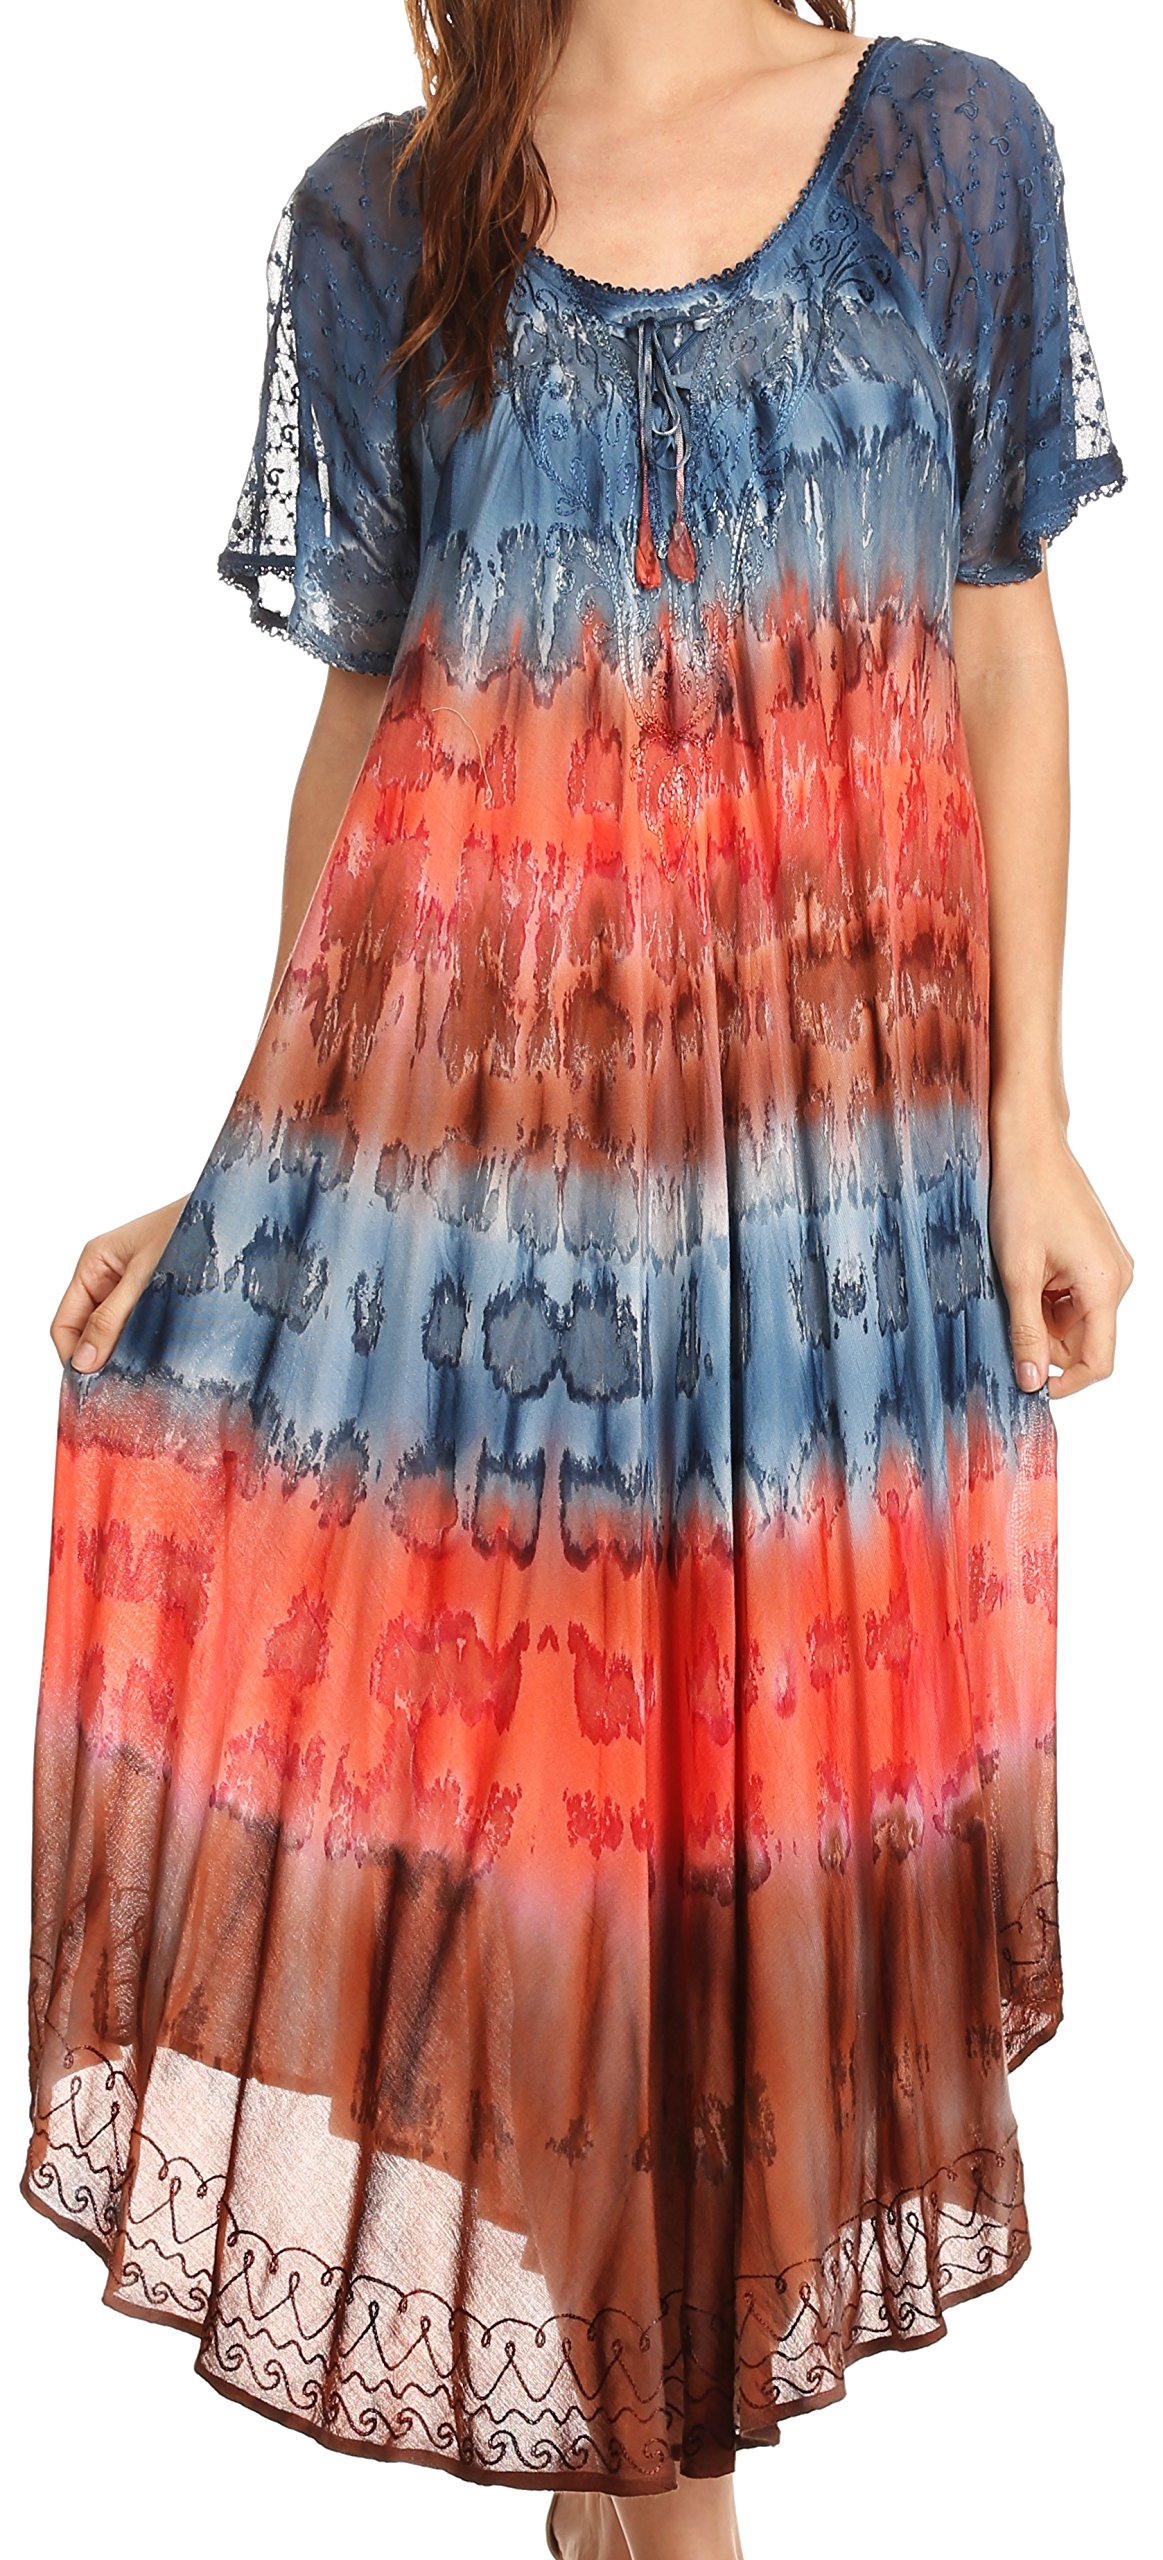 Available at Amazon: Sakkas Sula Tie-Dye Wide Neck Embroidered Boho Sundress Caftan Cover Up